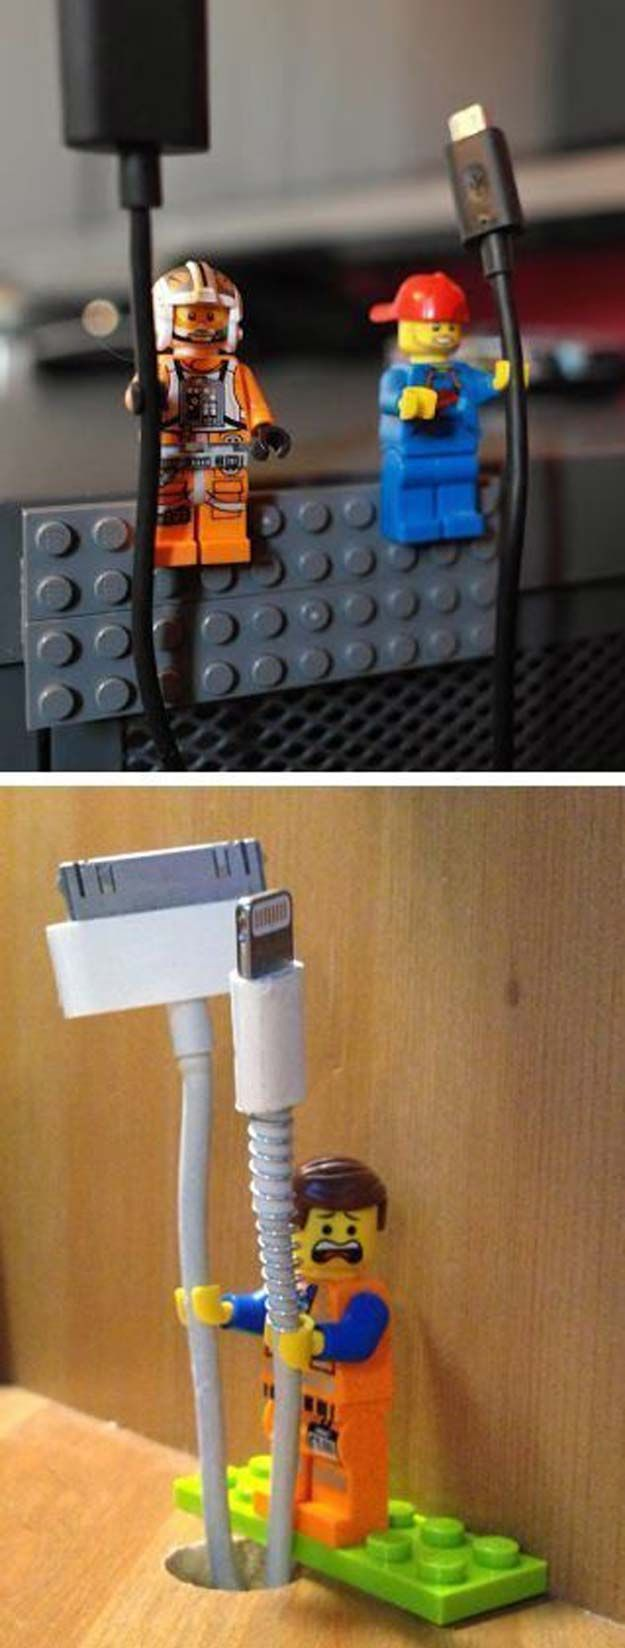 Fun DIY Ideas for Your Desk - DIY Lego Man Cord Holder - Cubicles, Ideas for Teens and Student - Cheap Dollar Tree Storage and Decor for Offices and Home - Cool DIY Projects and Crafts for Teens http://diyprojectsforteens.com/diy-ideas-desk | Beautiful Cases For Girls